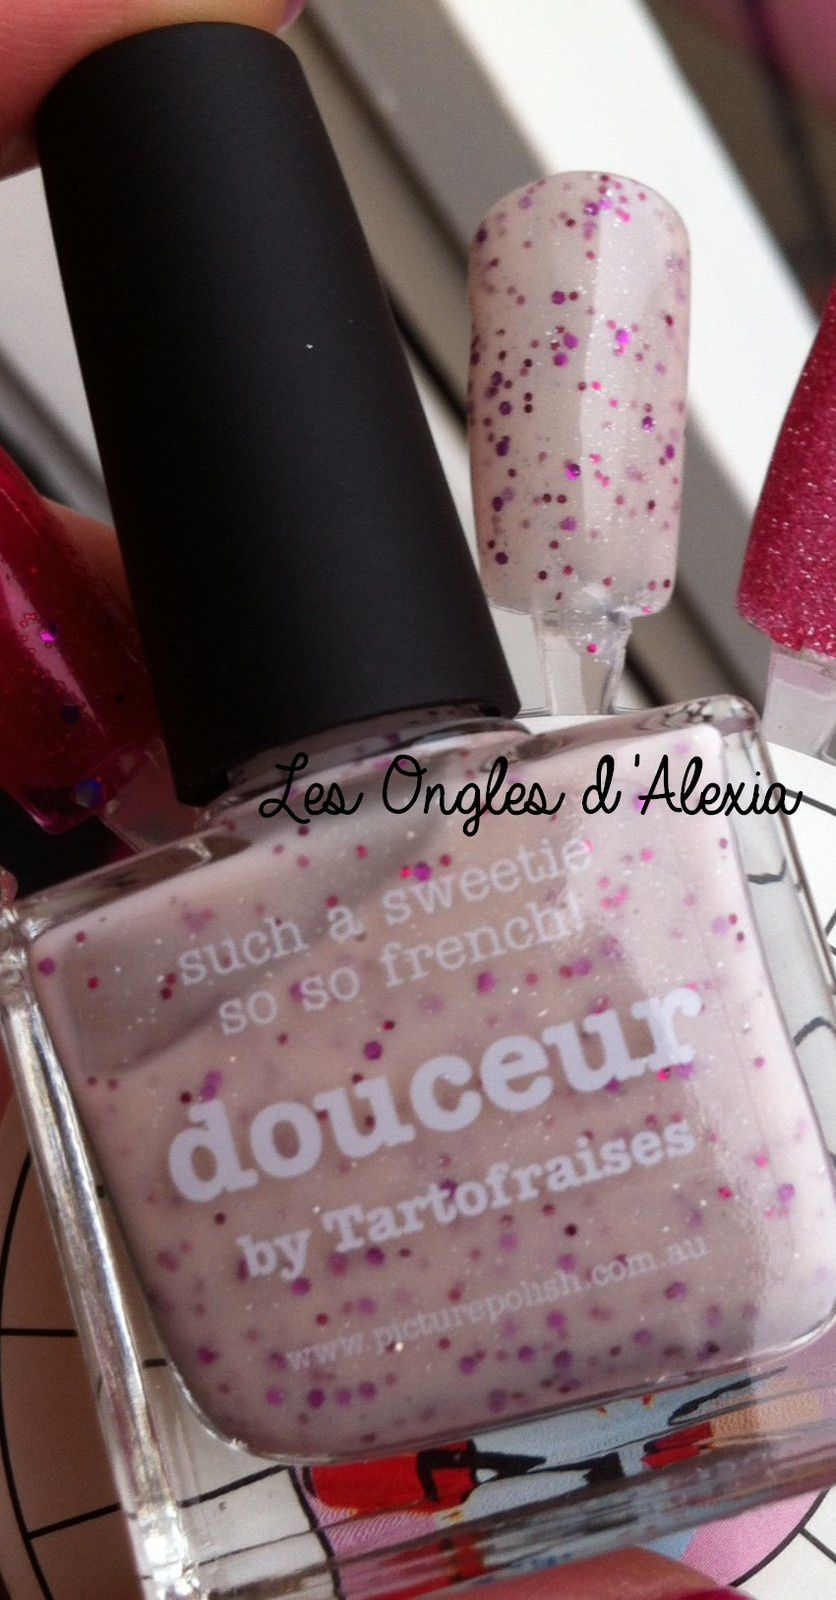 Picture Polish - Douceur By Tartofraises